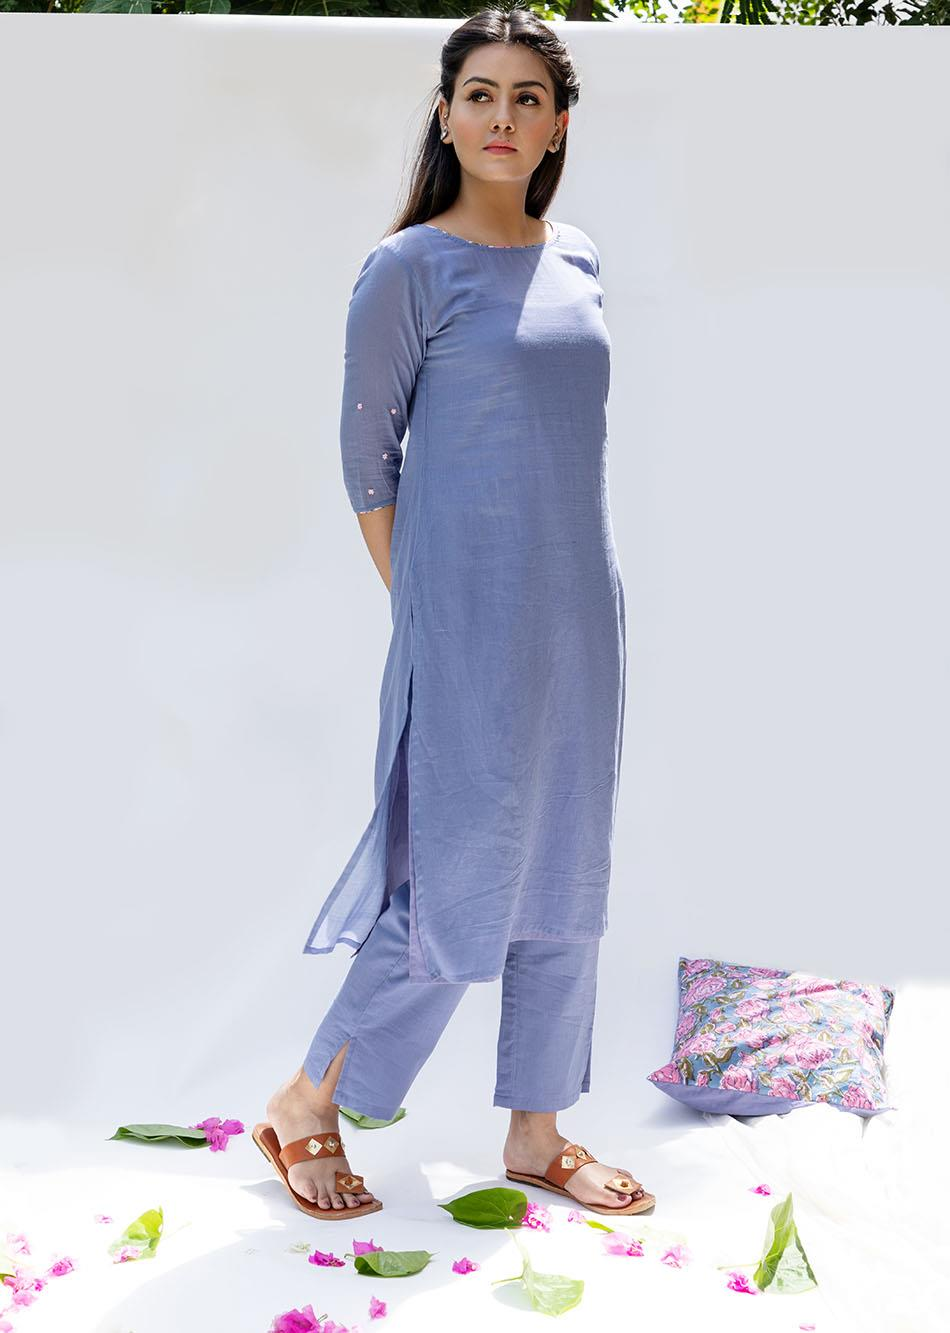 Baiguni Transy kurta and pants (set of 2) By Jovi Fashion